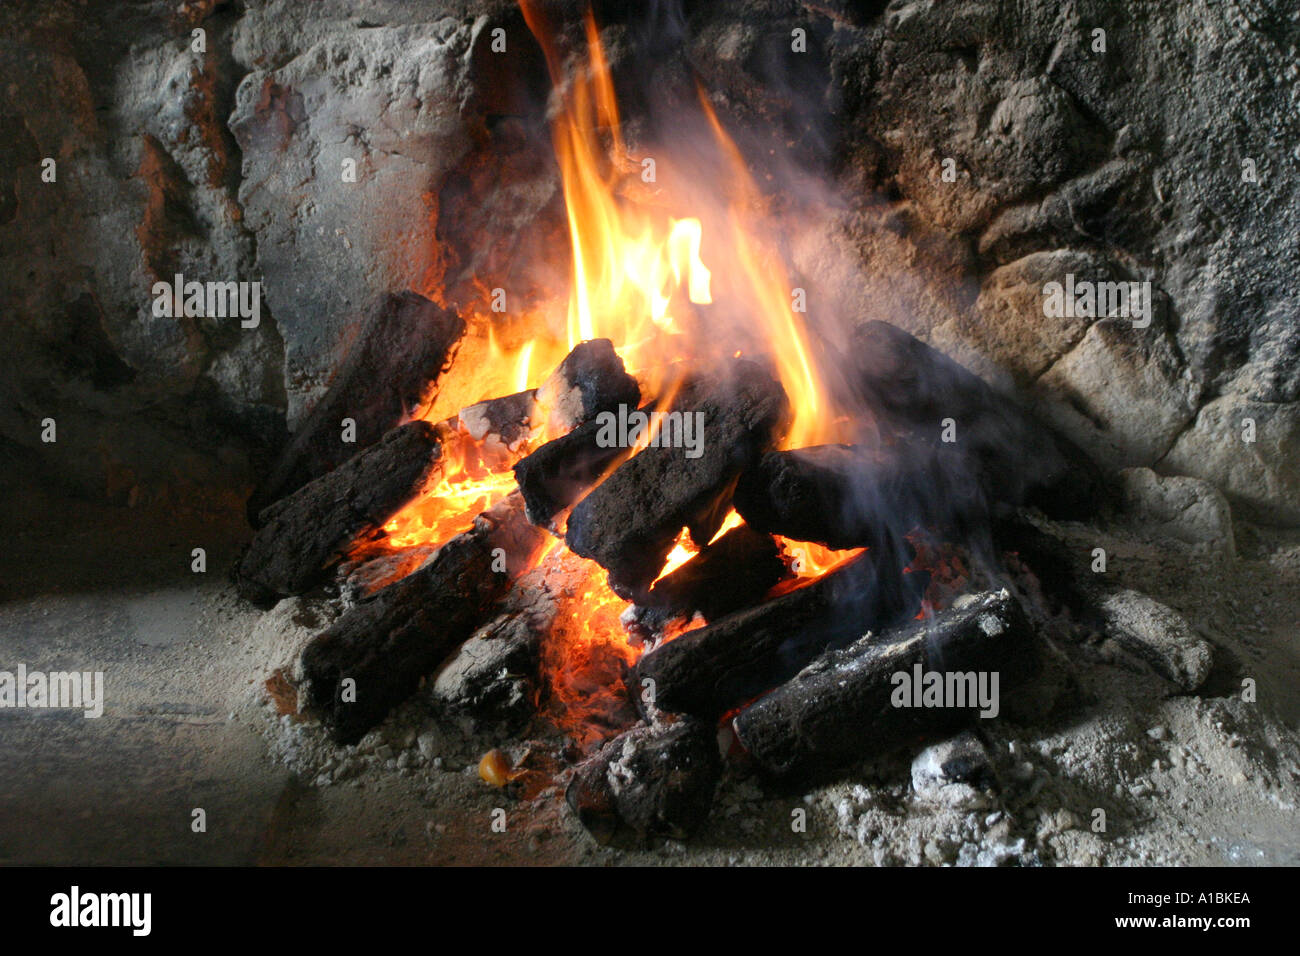 Flames coming from a burning peat turf fire in a traditional Irish ...